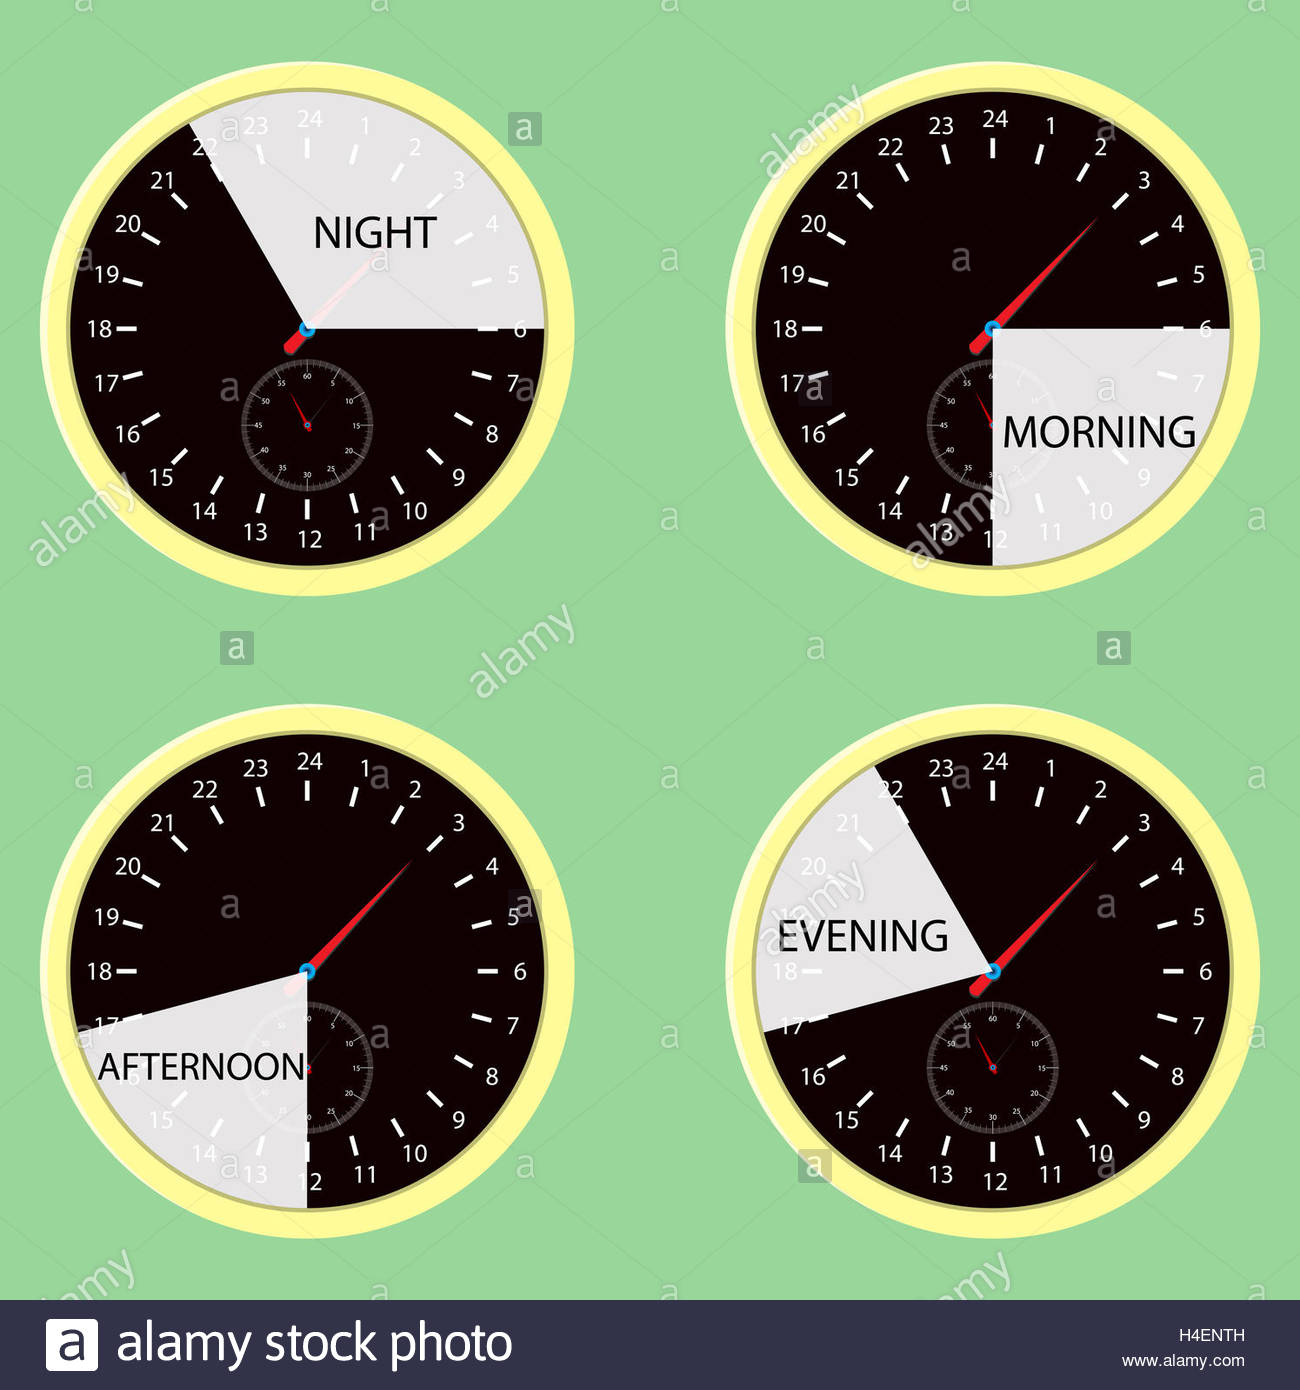 Clock hours, time of day morning, afternoon, evening, night. Watch cycle  icon, day and night. Vector illustration